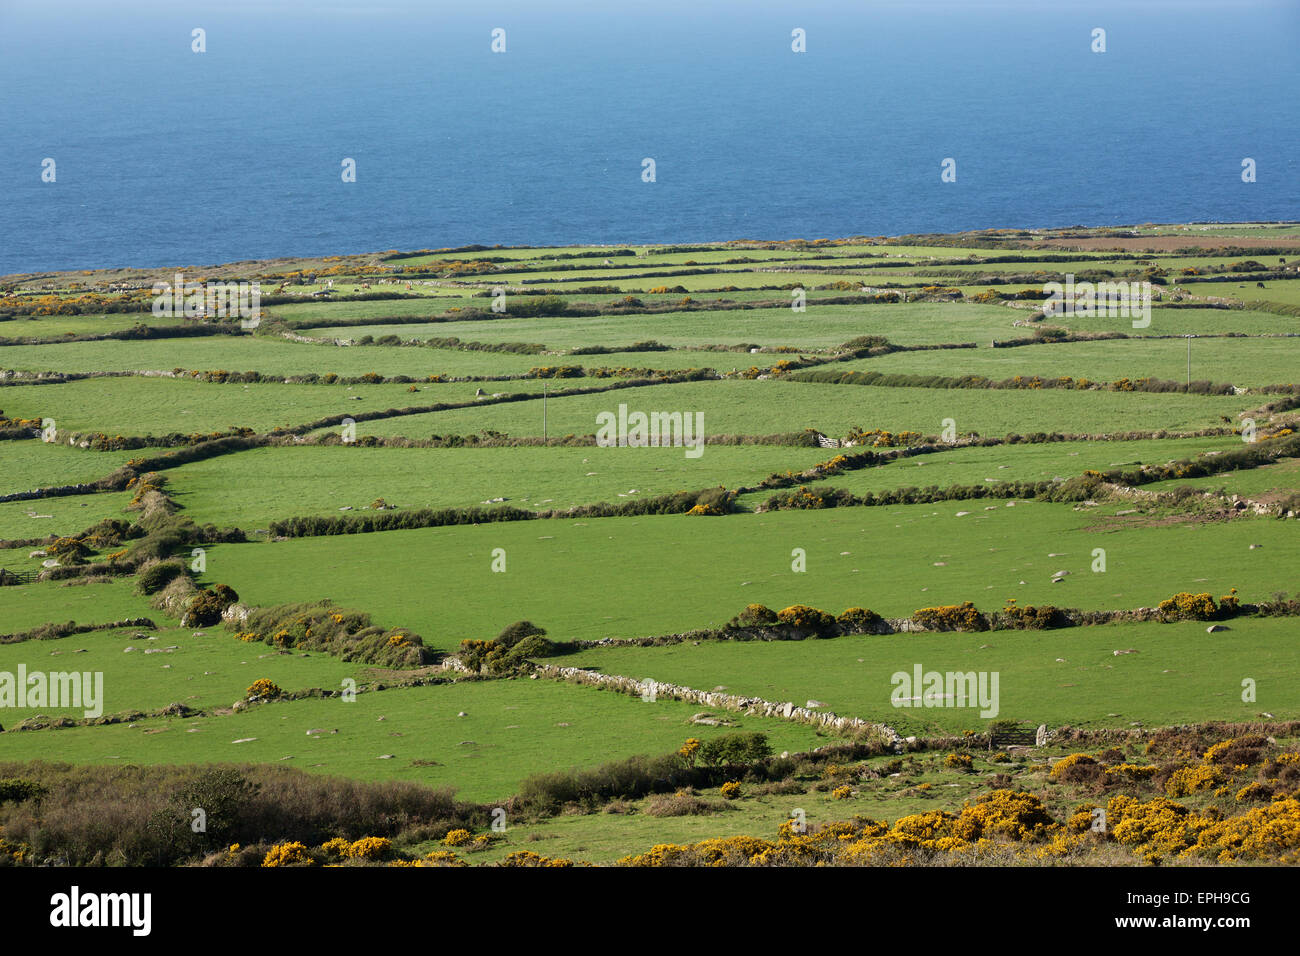 Aerial landscape view of the Cornish coast showing a patchwork of fields with drystone wall edges - Stock Image